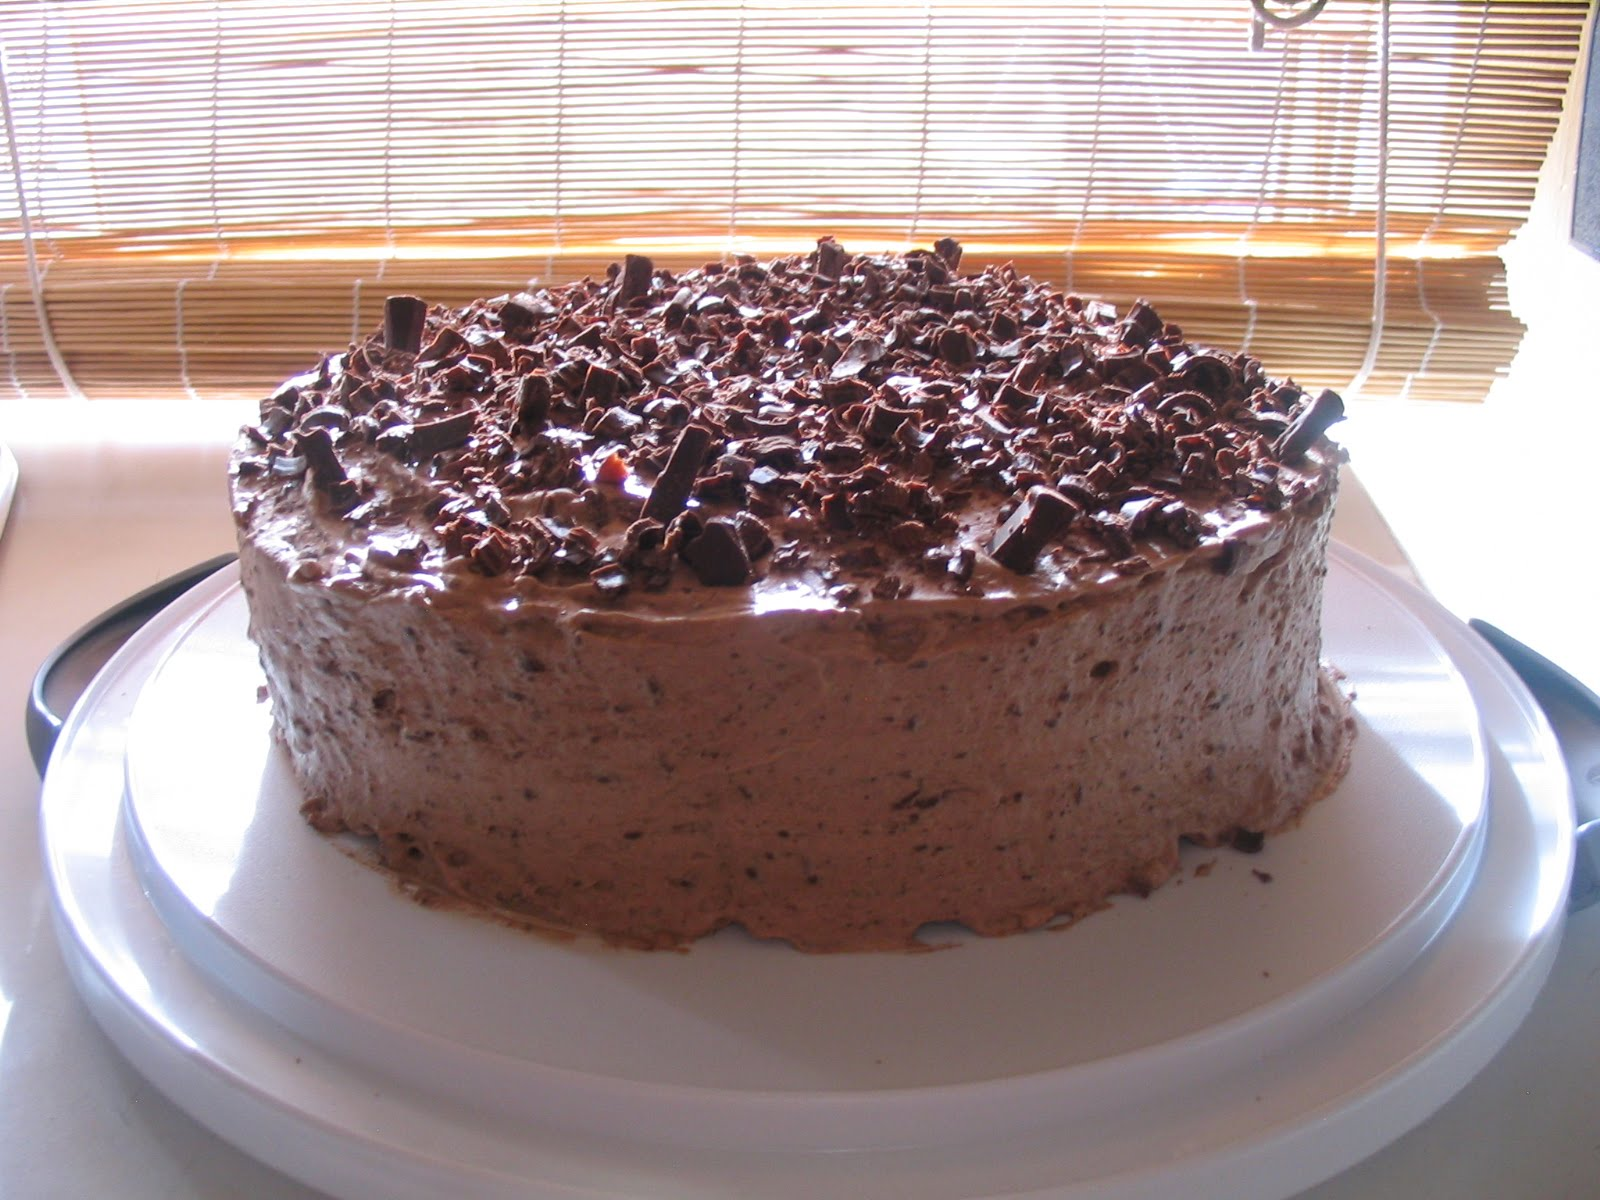 Barefoot in the Kitchen: Irish Cream Chocolate Mousse Cake